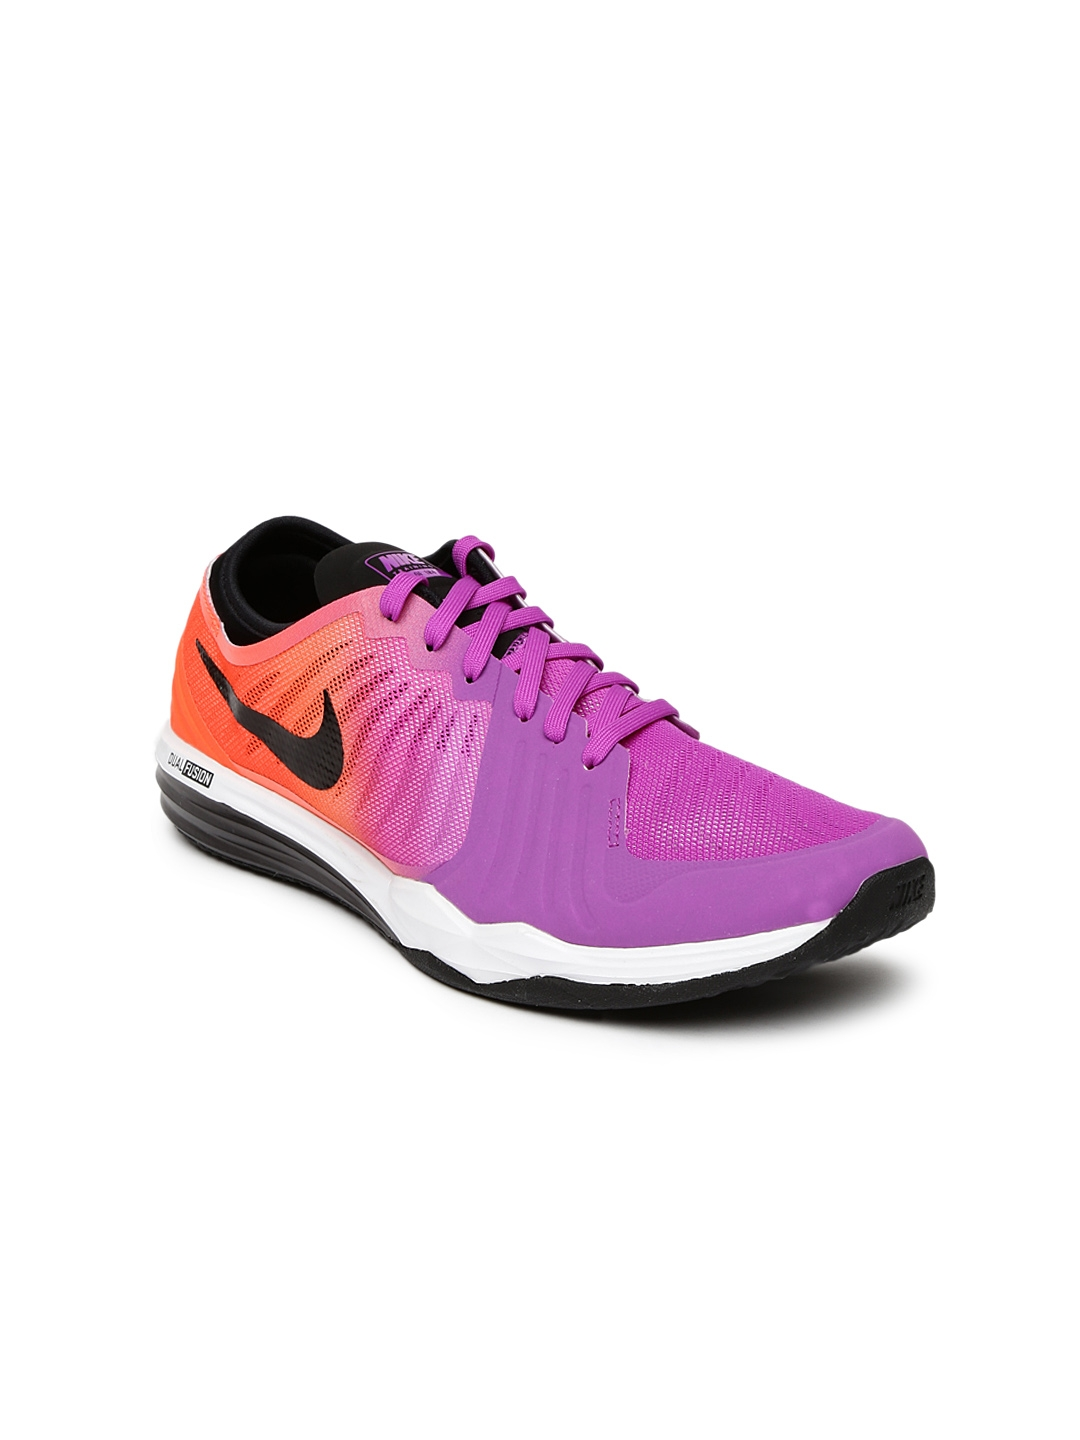 7c87fbfae7136 Buy Nike Women Purple   Orange Dual Fusion TR 4 Printed Training Shoes -  Sports Shoes for Women 1267308